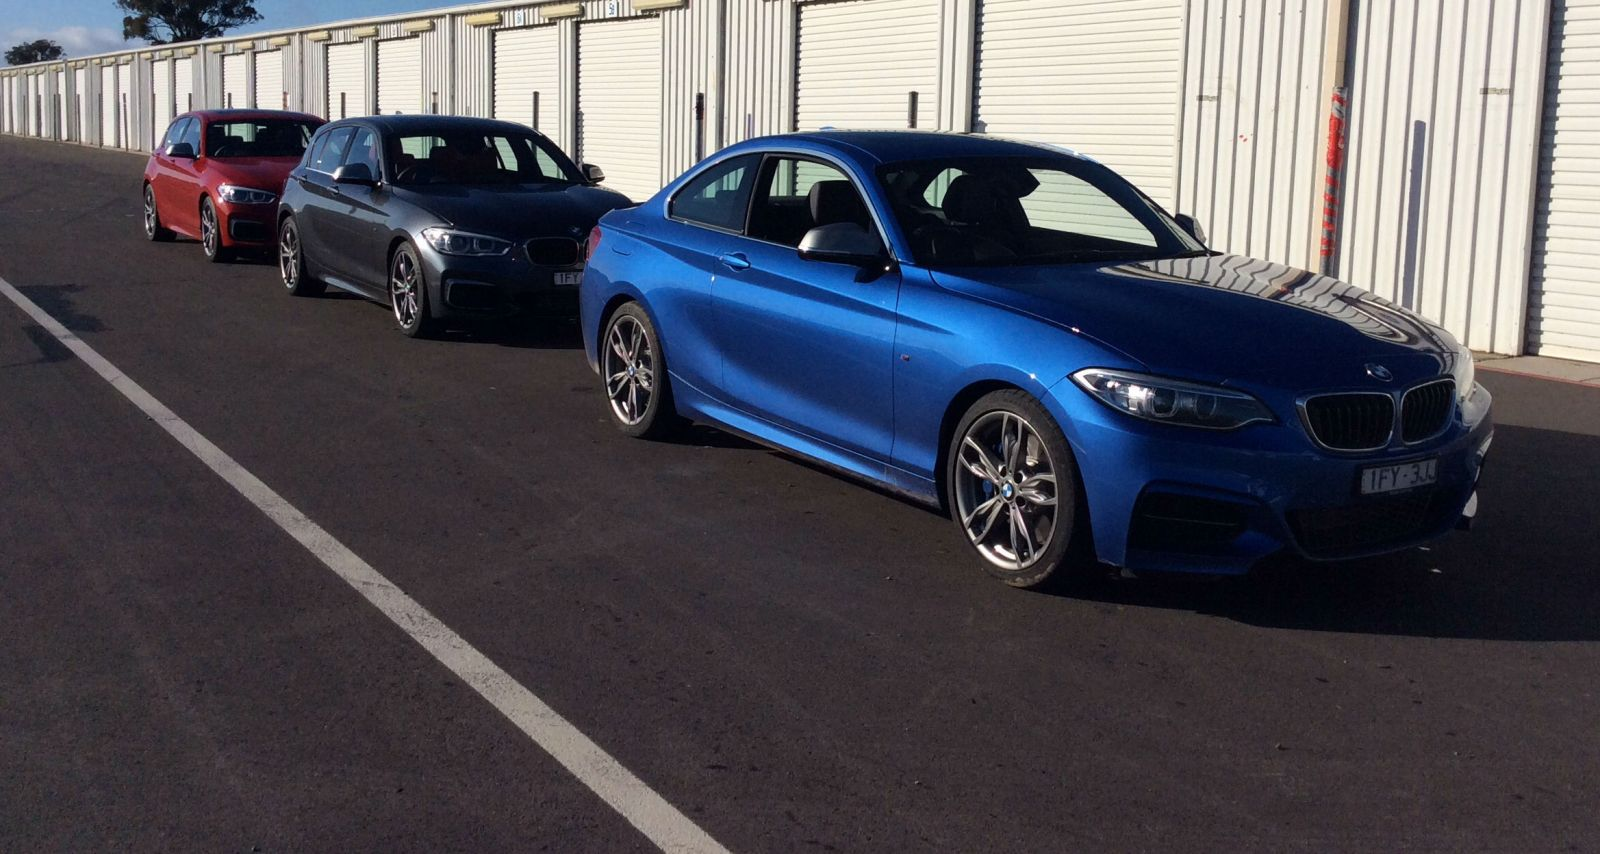 2017 BMW 1 Series & 2 Series First Drive REVIEW - More Power, More M Models...This Is Sounding Great